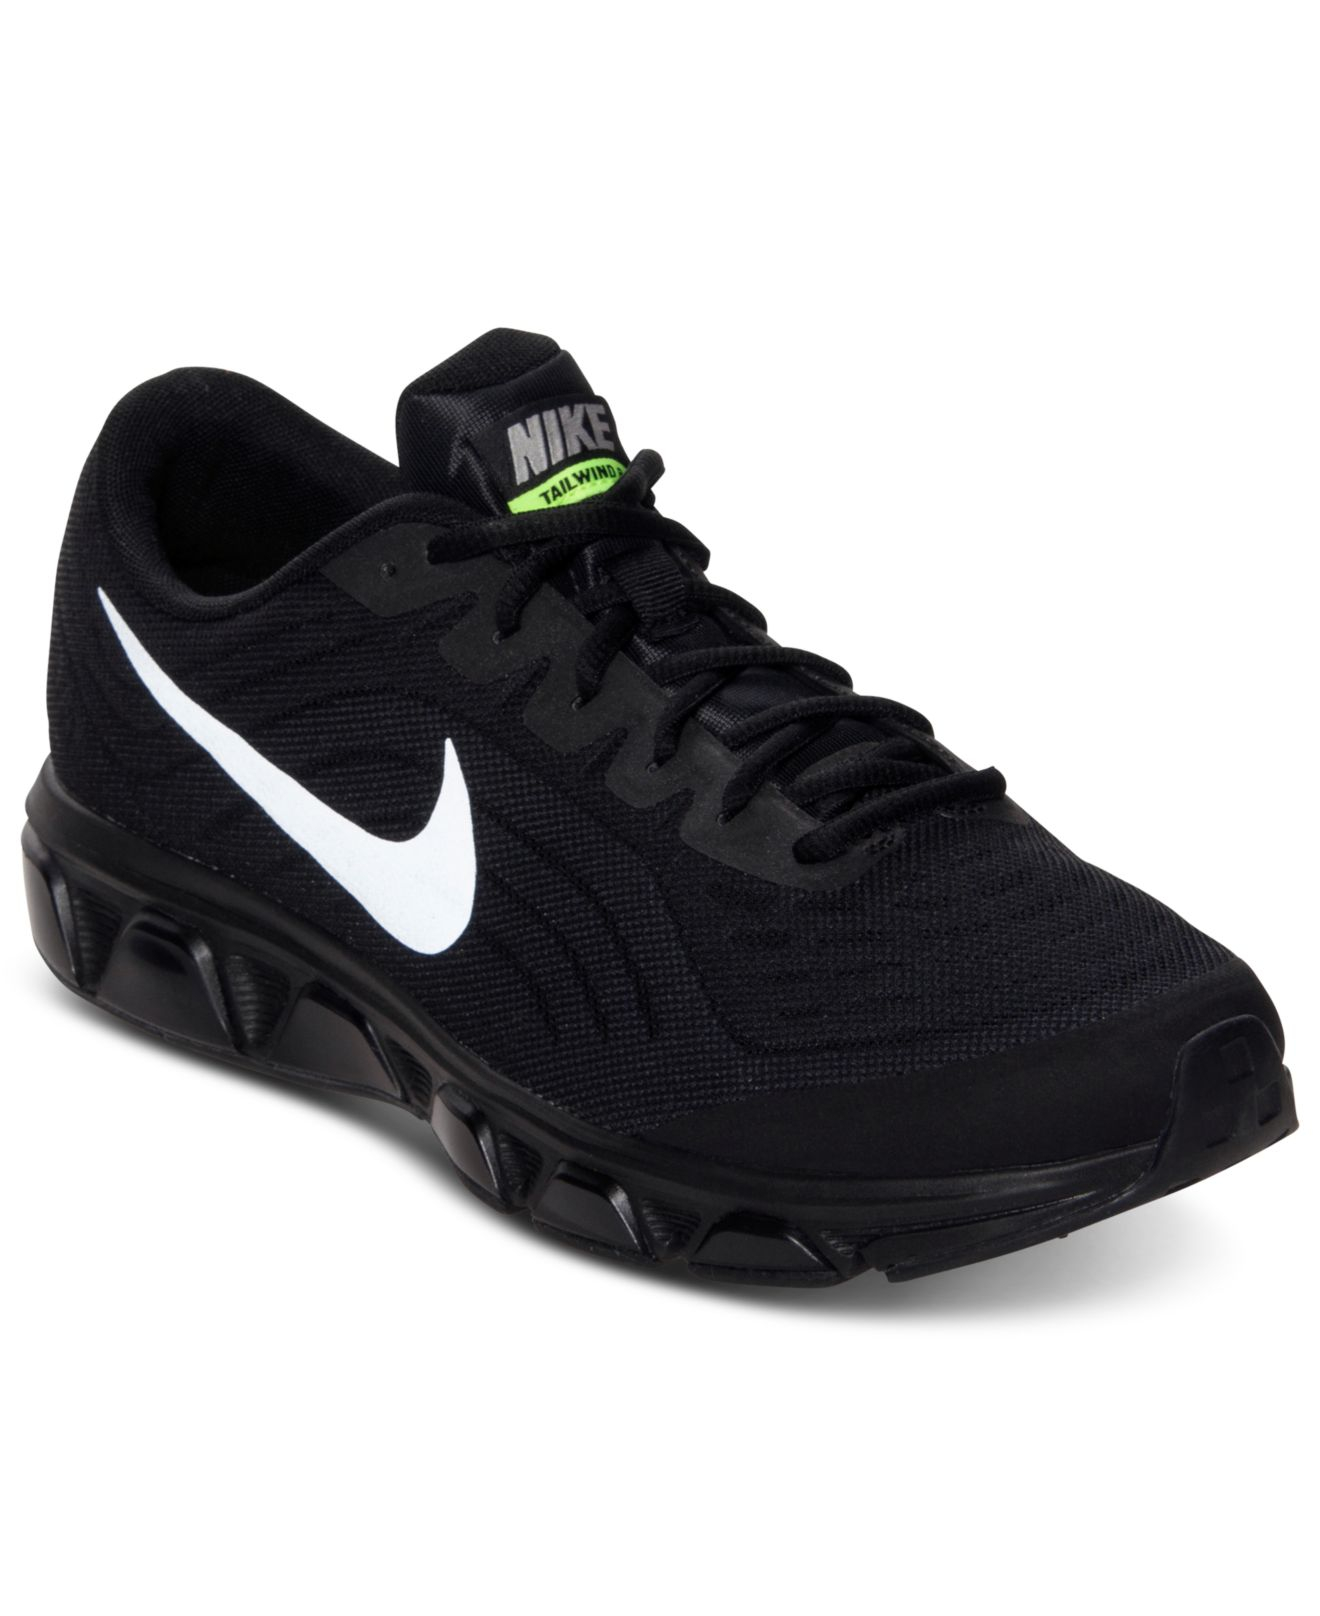 separation shoes 24fa4 be9da Nike Black Men'S Air Max Tailwind 6 Running Sneakers From Finish Line for  men